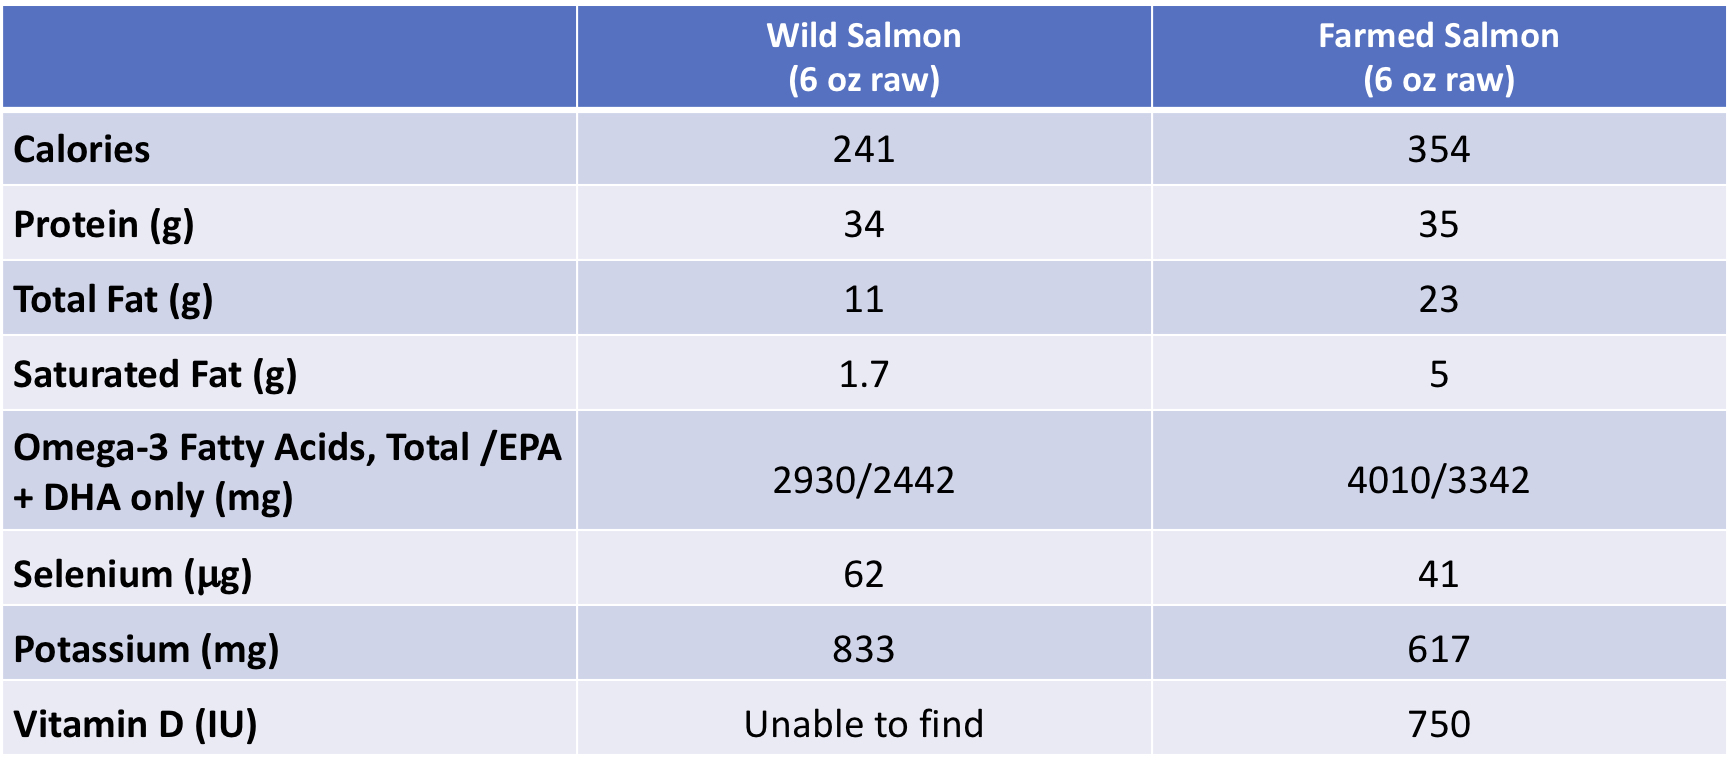 Comparison of nutrients in wild and farmed salmon